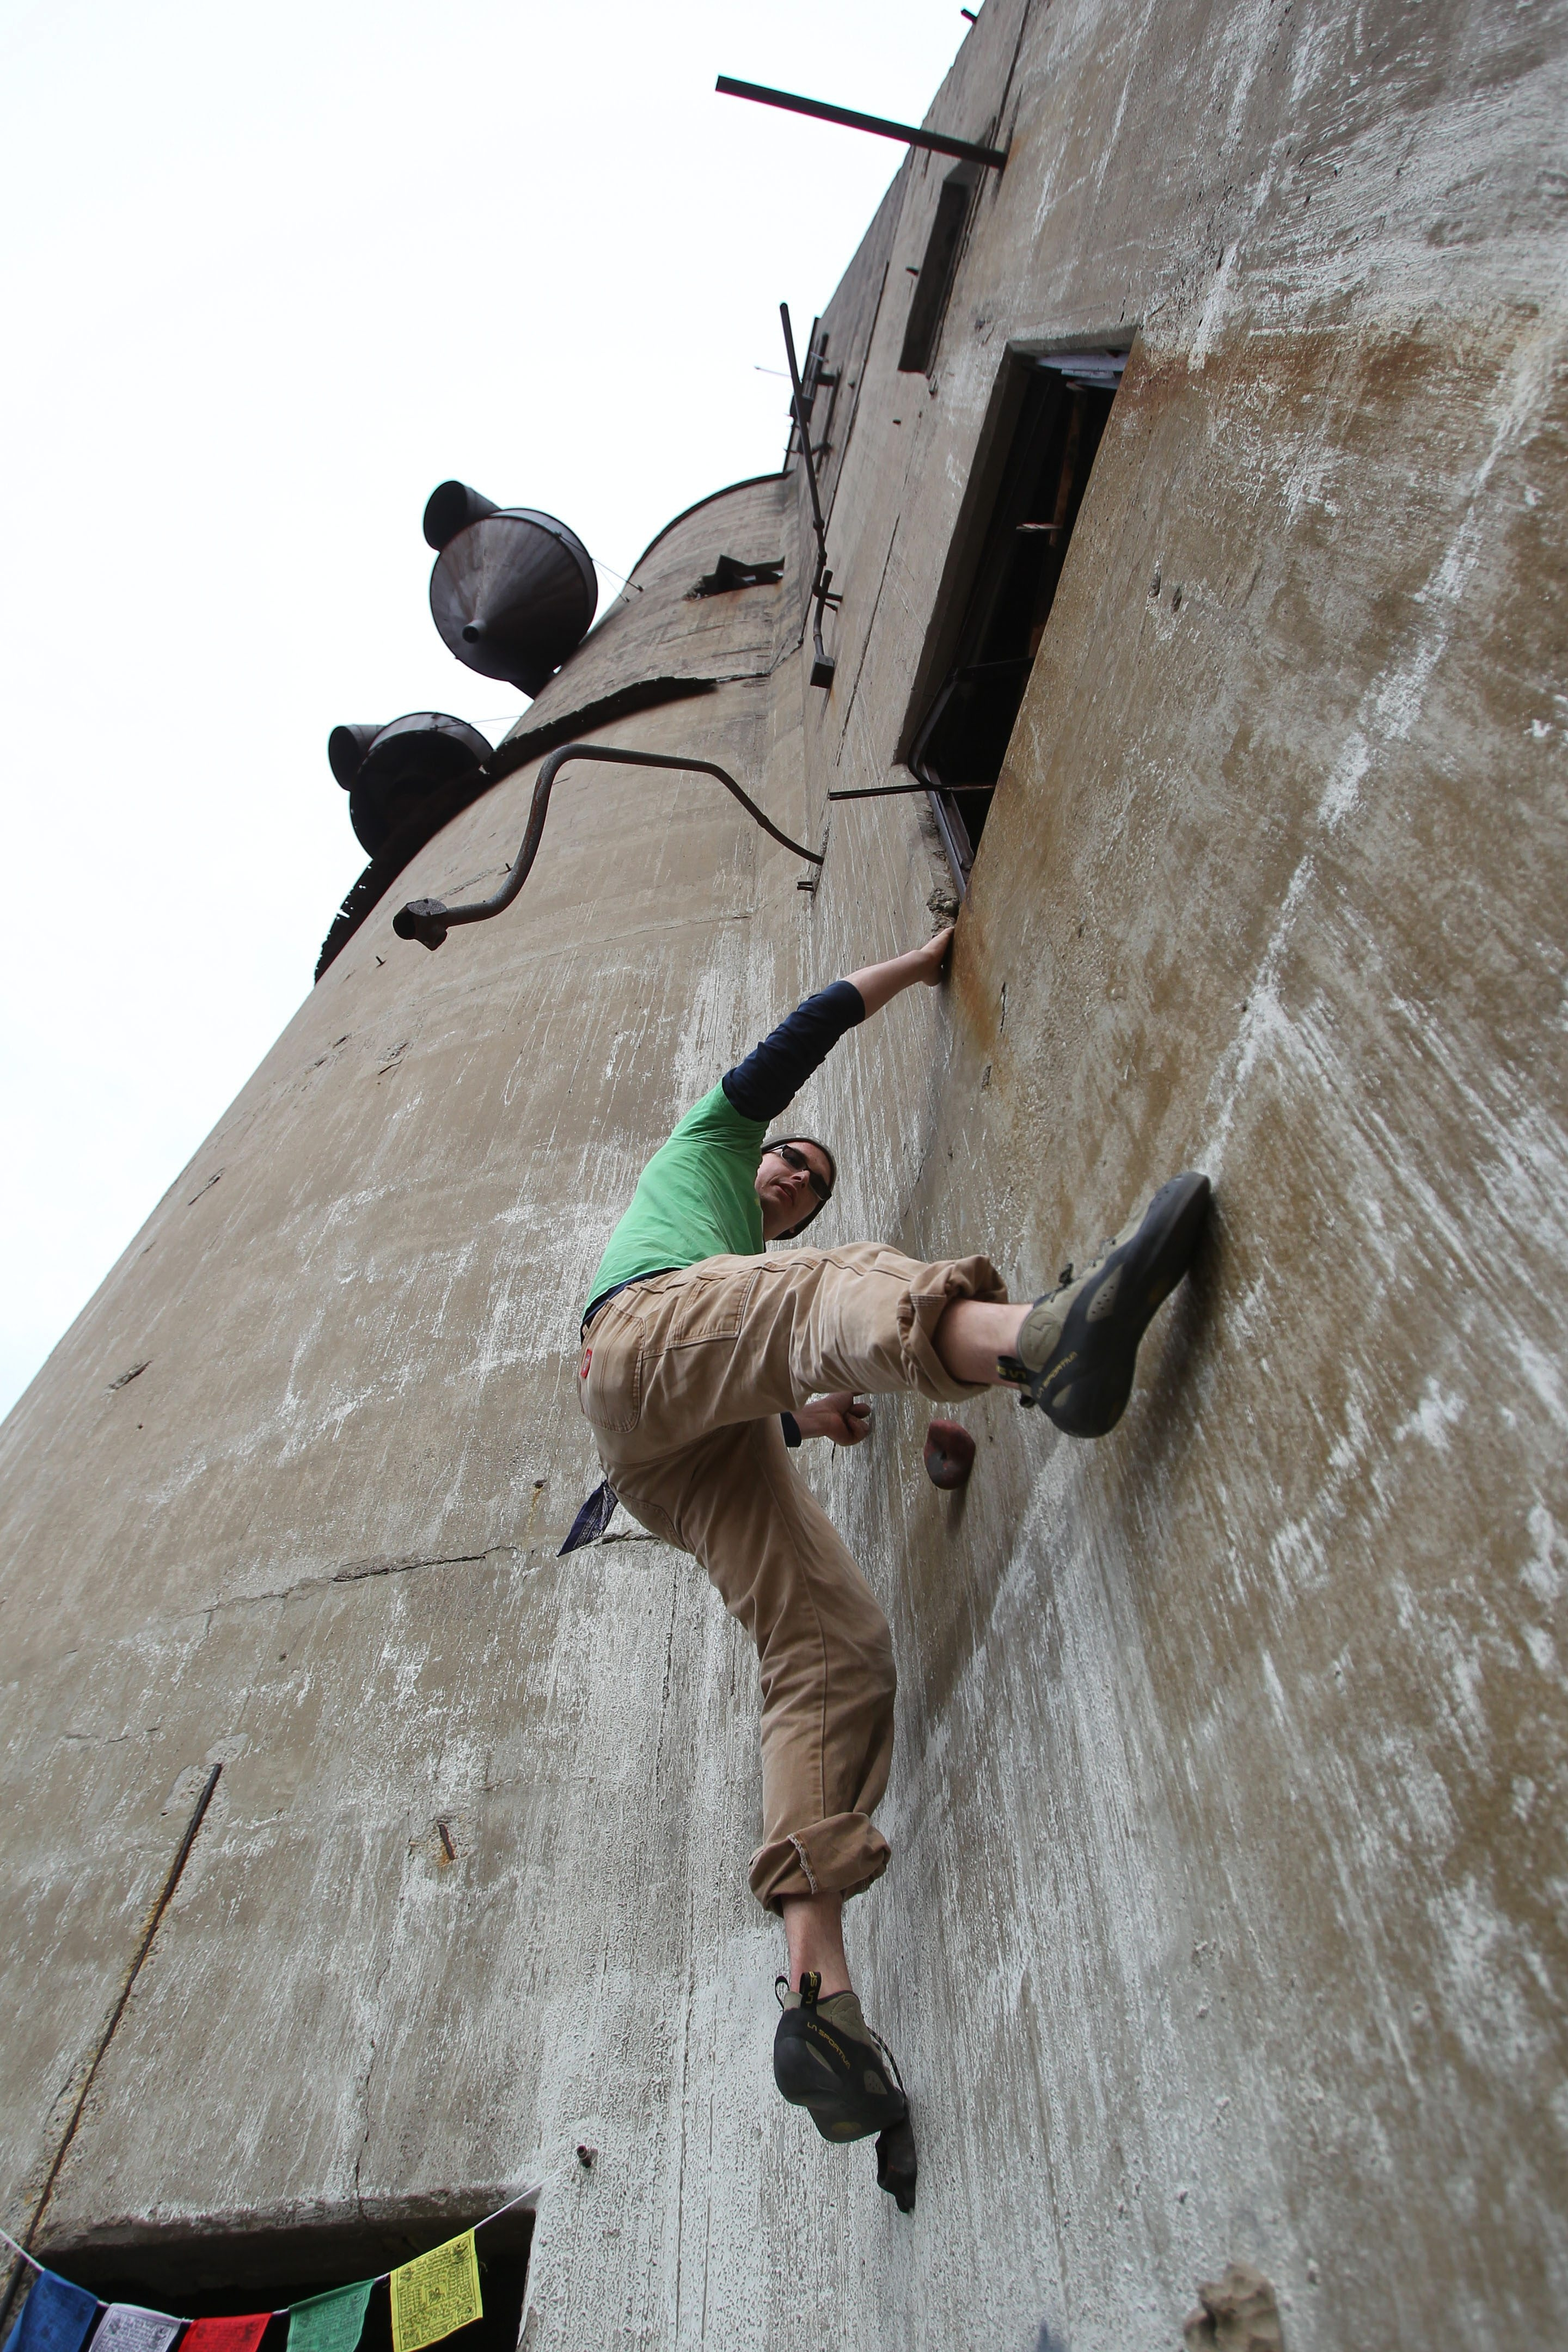 Glen Waterman of Forestville showed one way that climbers could use the outside of a former grain mill at Silo City during the 11th annual Boom Days bash at the Childs Street facility Saturday.